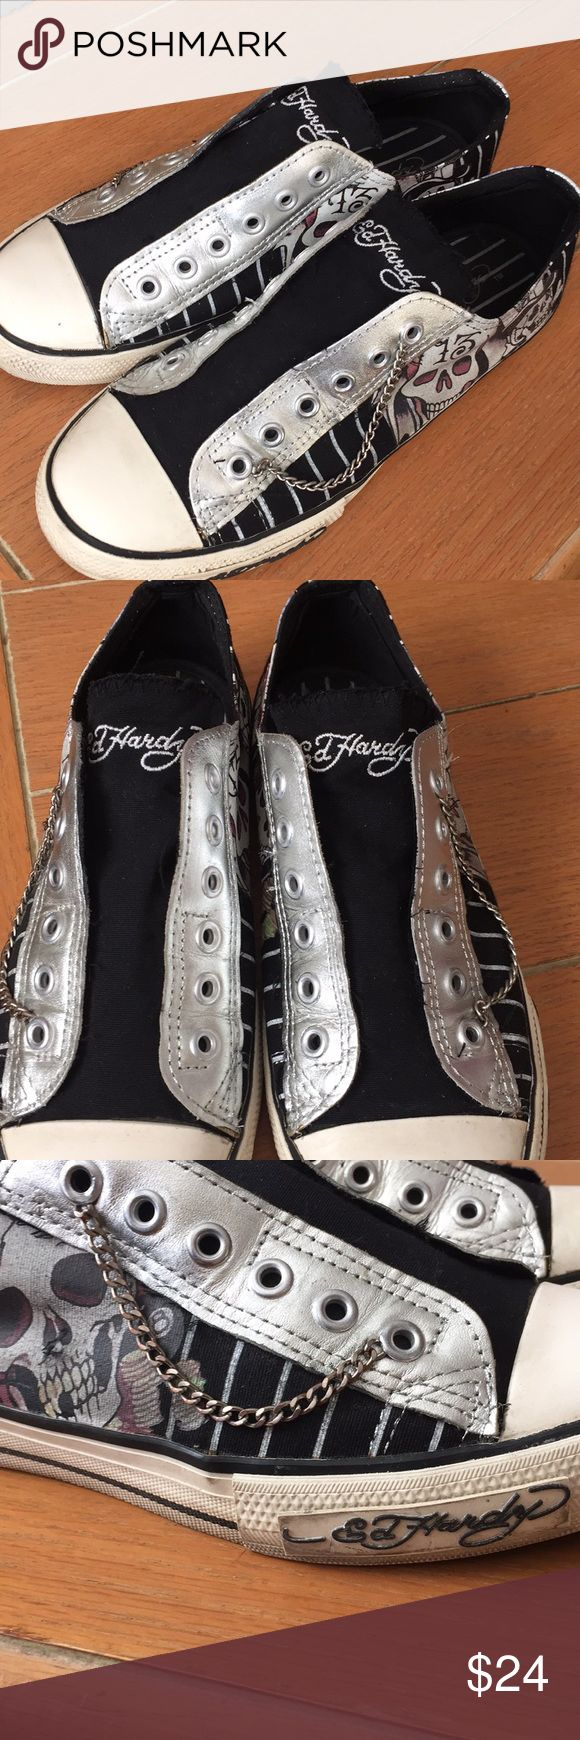 Ed Hardy slip on tennis shoes Super cut with chain attached size 7.  Great condition Ed Hardy Shoes Flats & Loafers